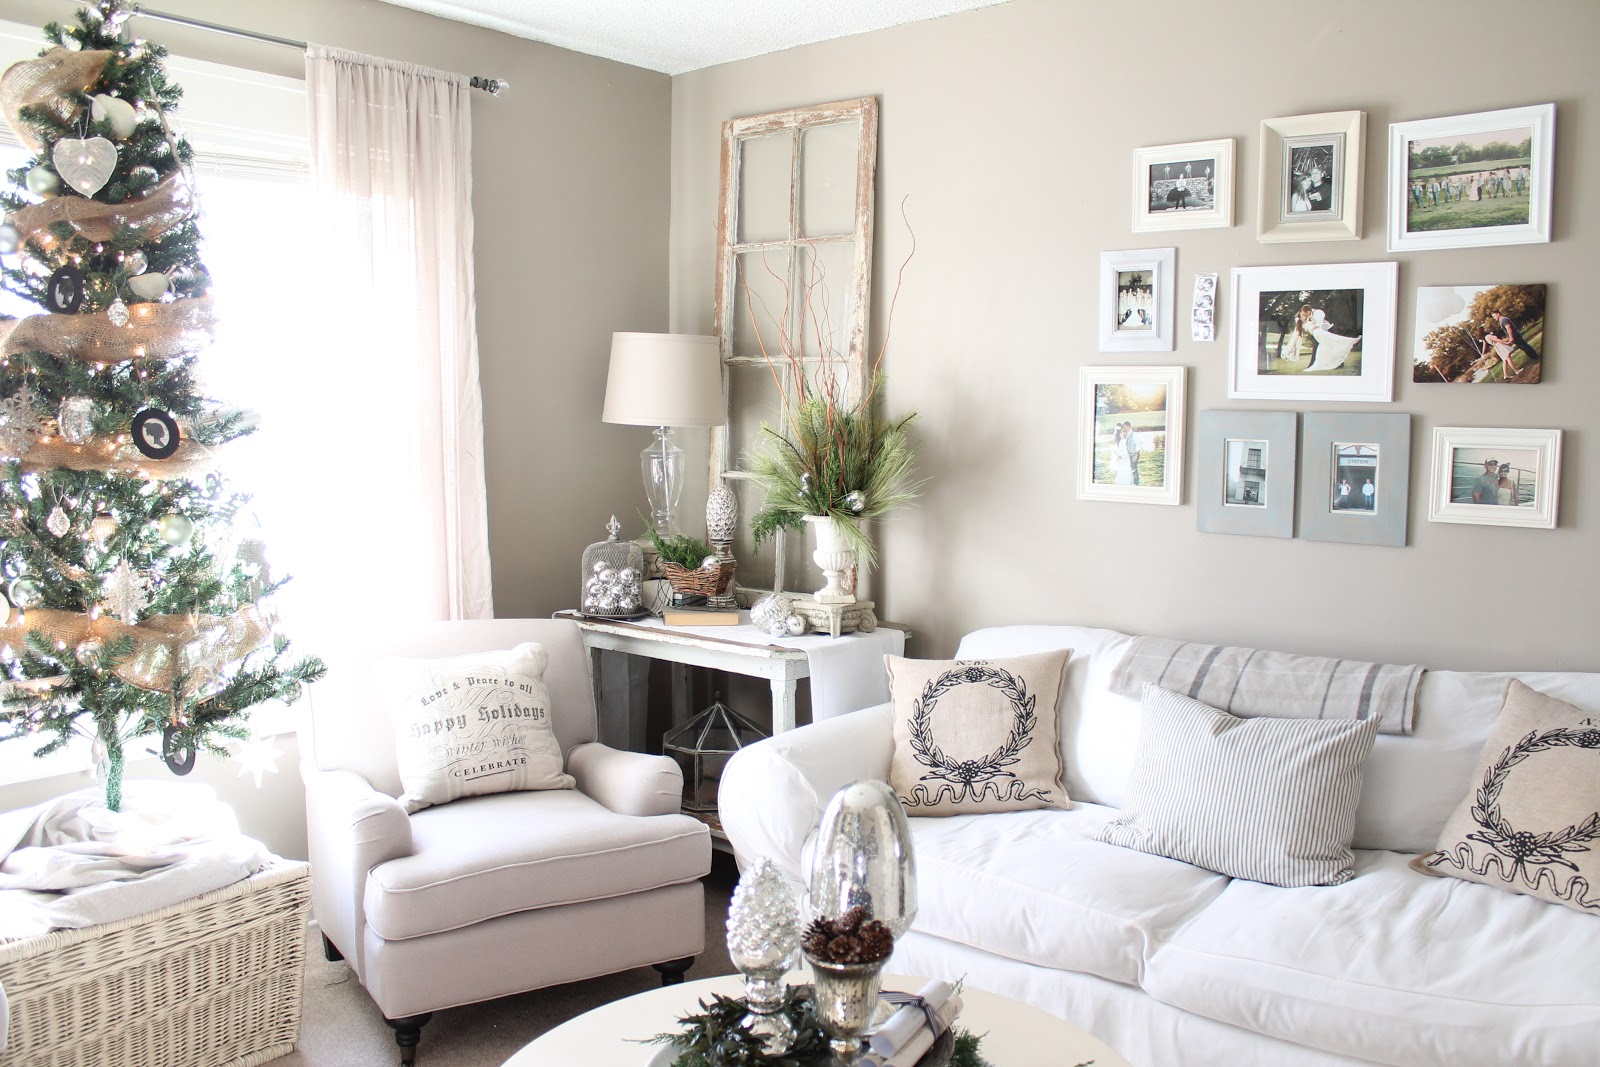 12th and White: Our Christmas Living Room- Part 2